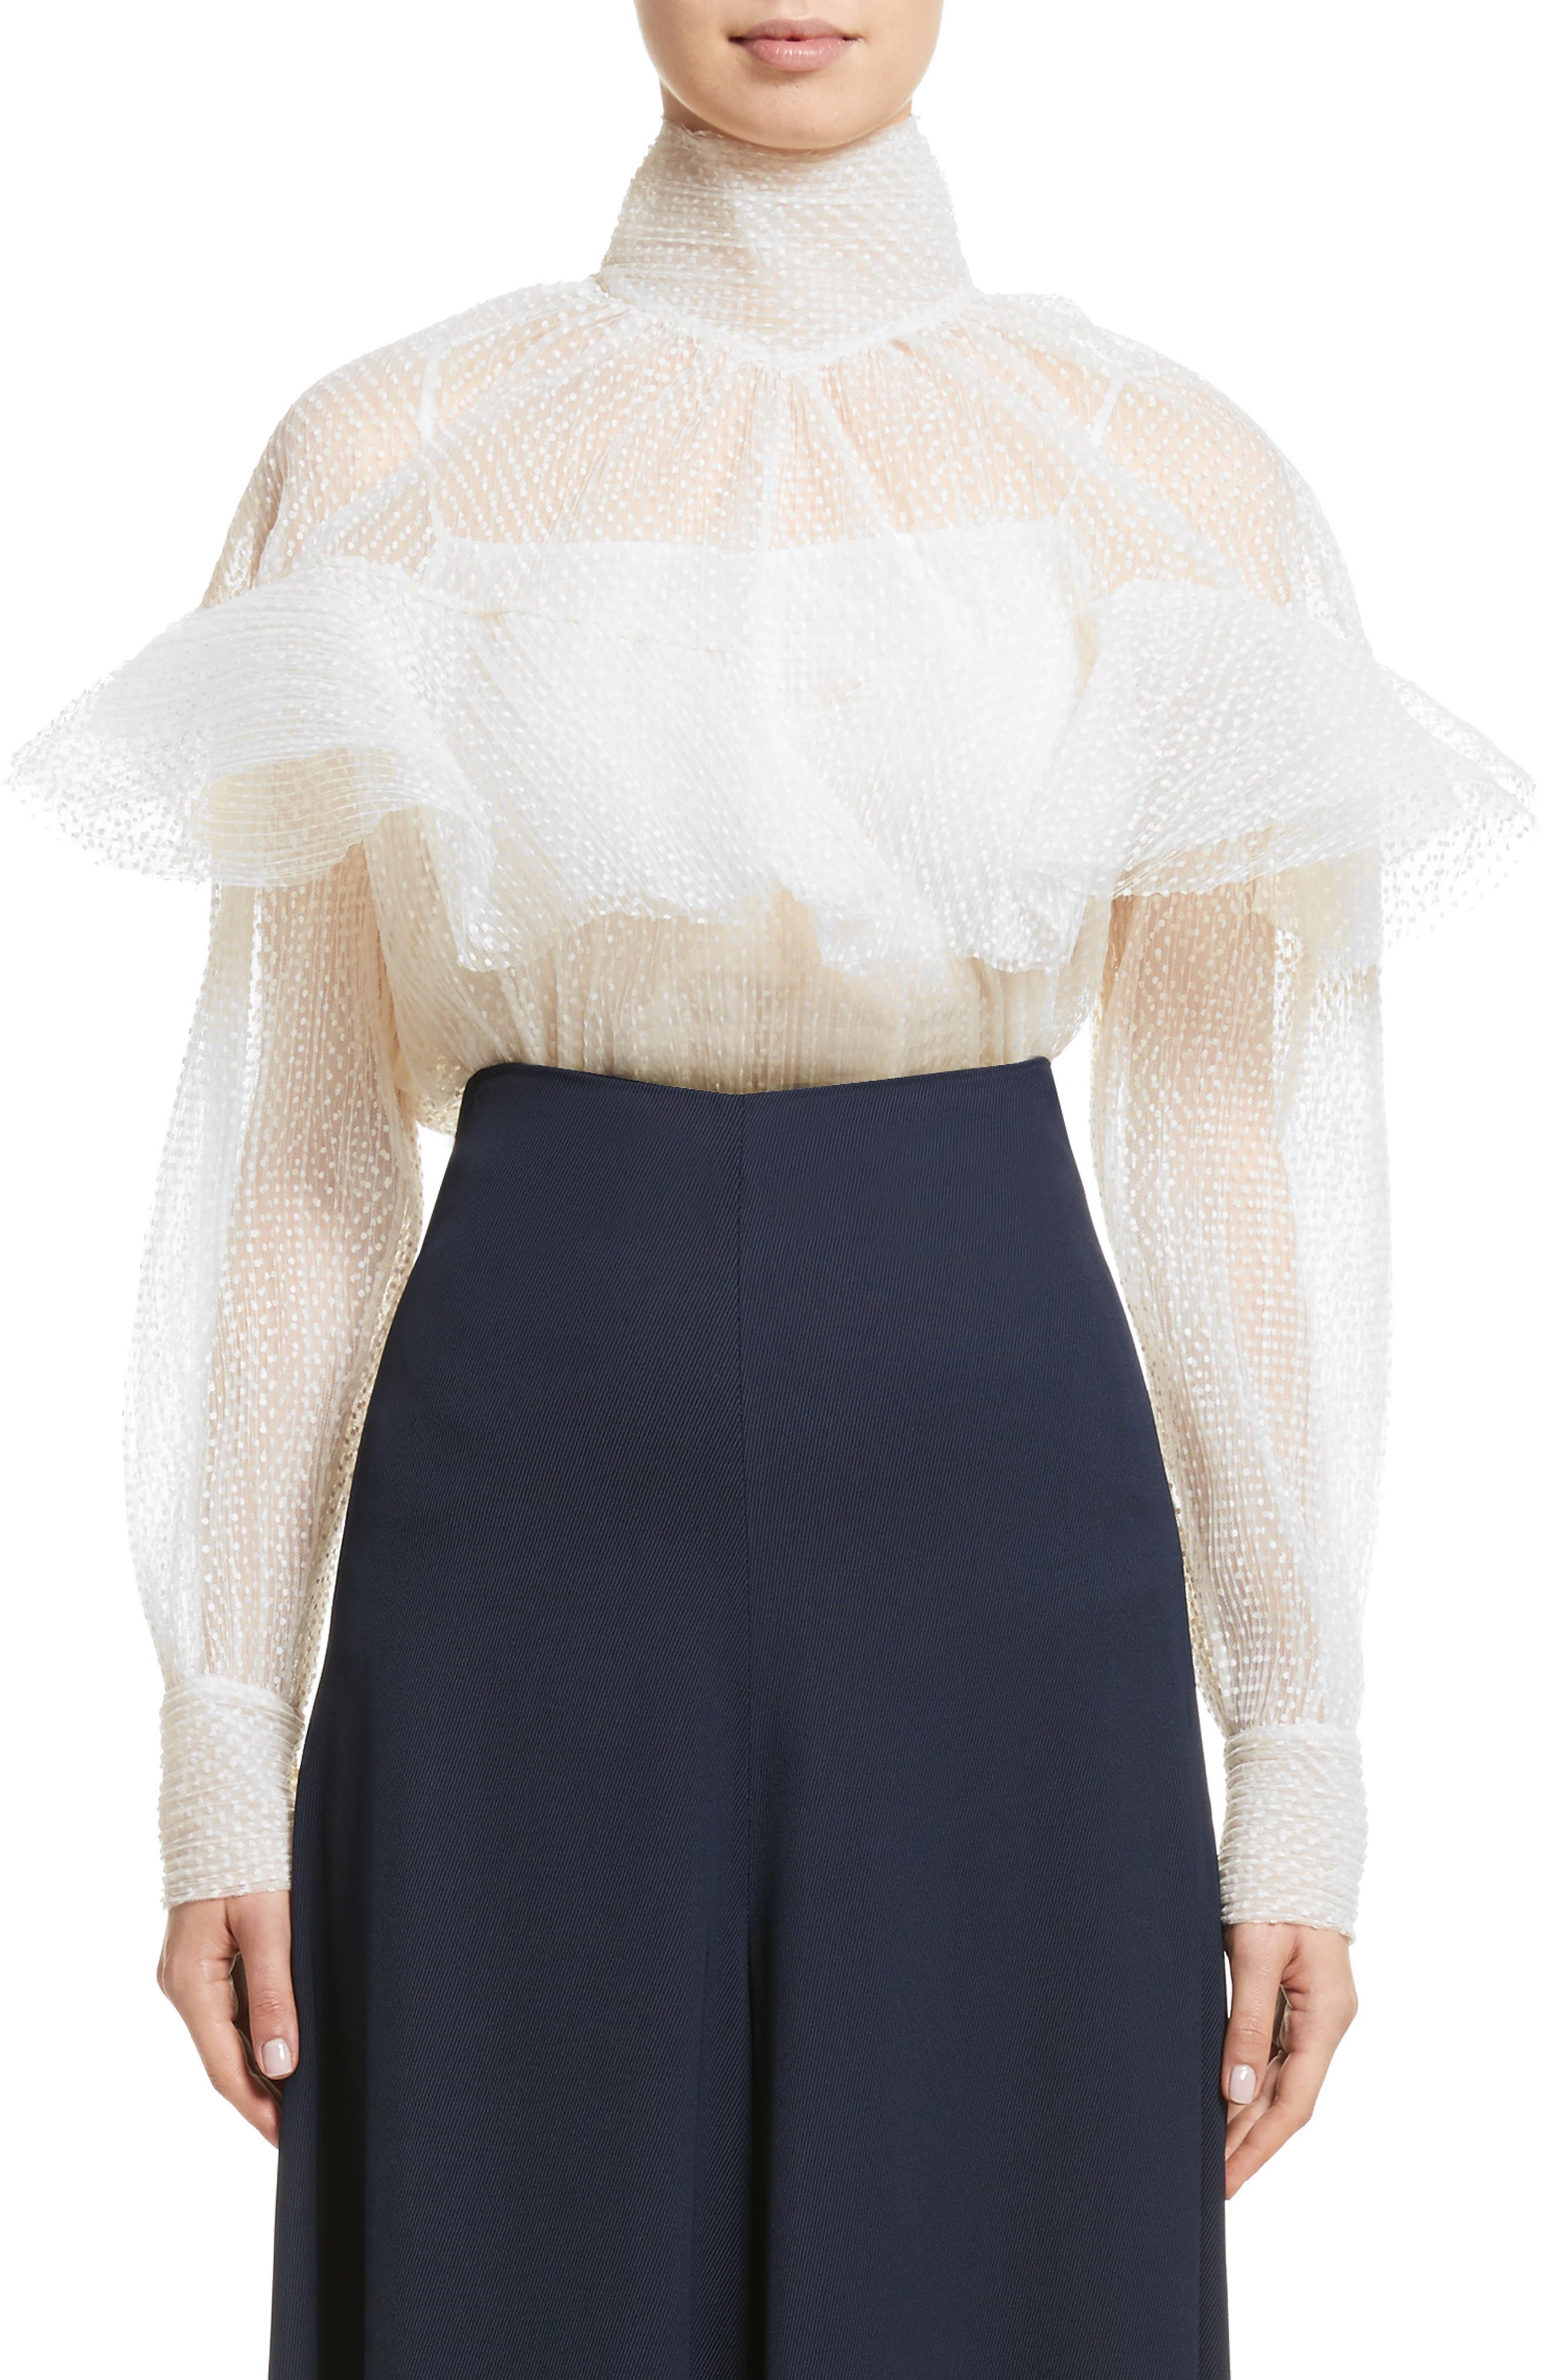 A.W.A.K.E Frill Double Layered Tulle Top,                         Main,                         color, 900